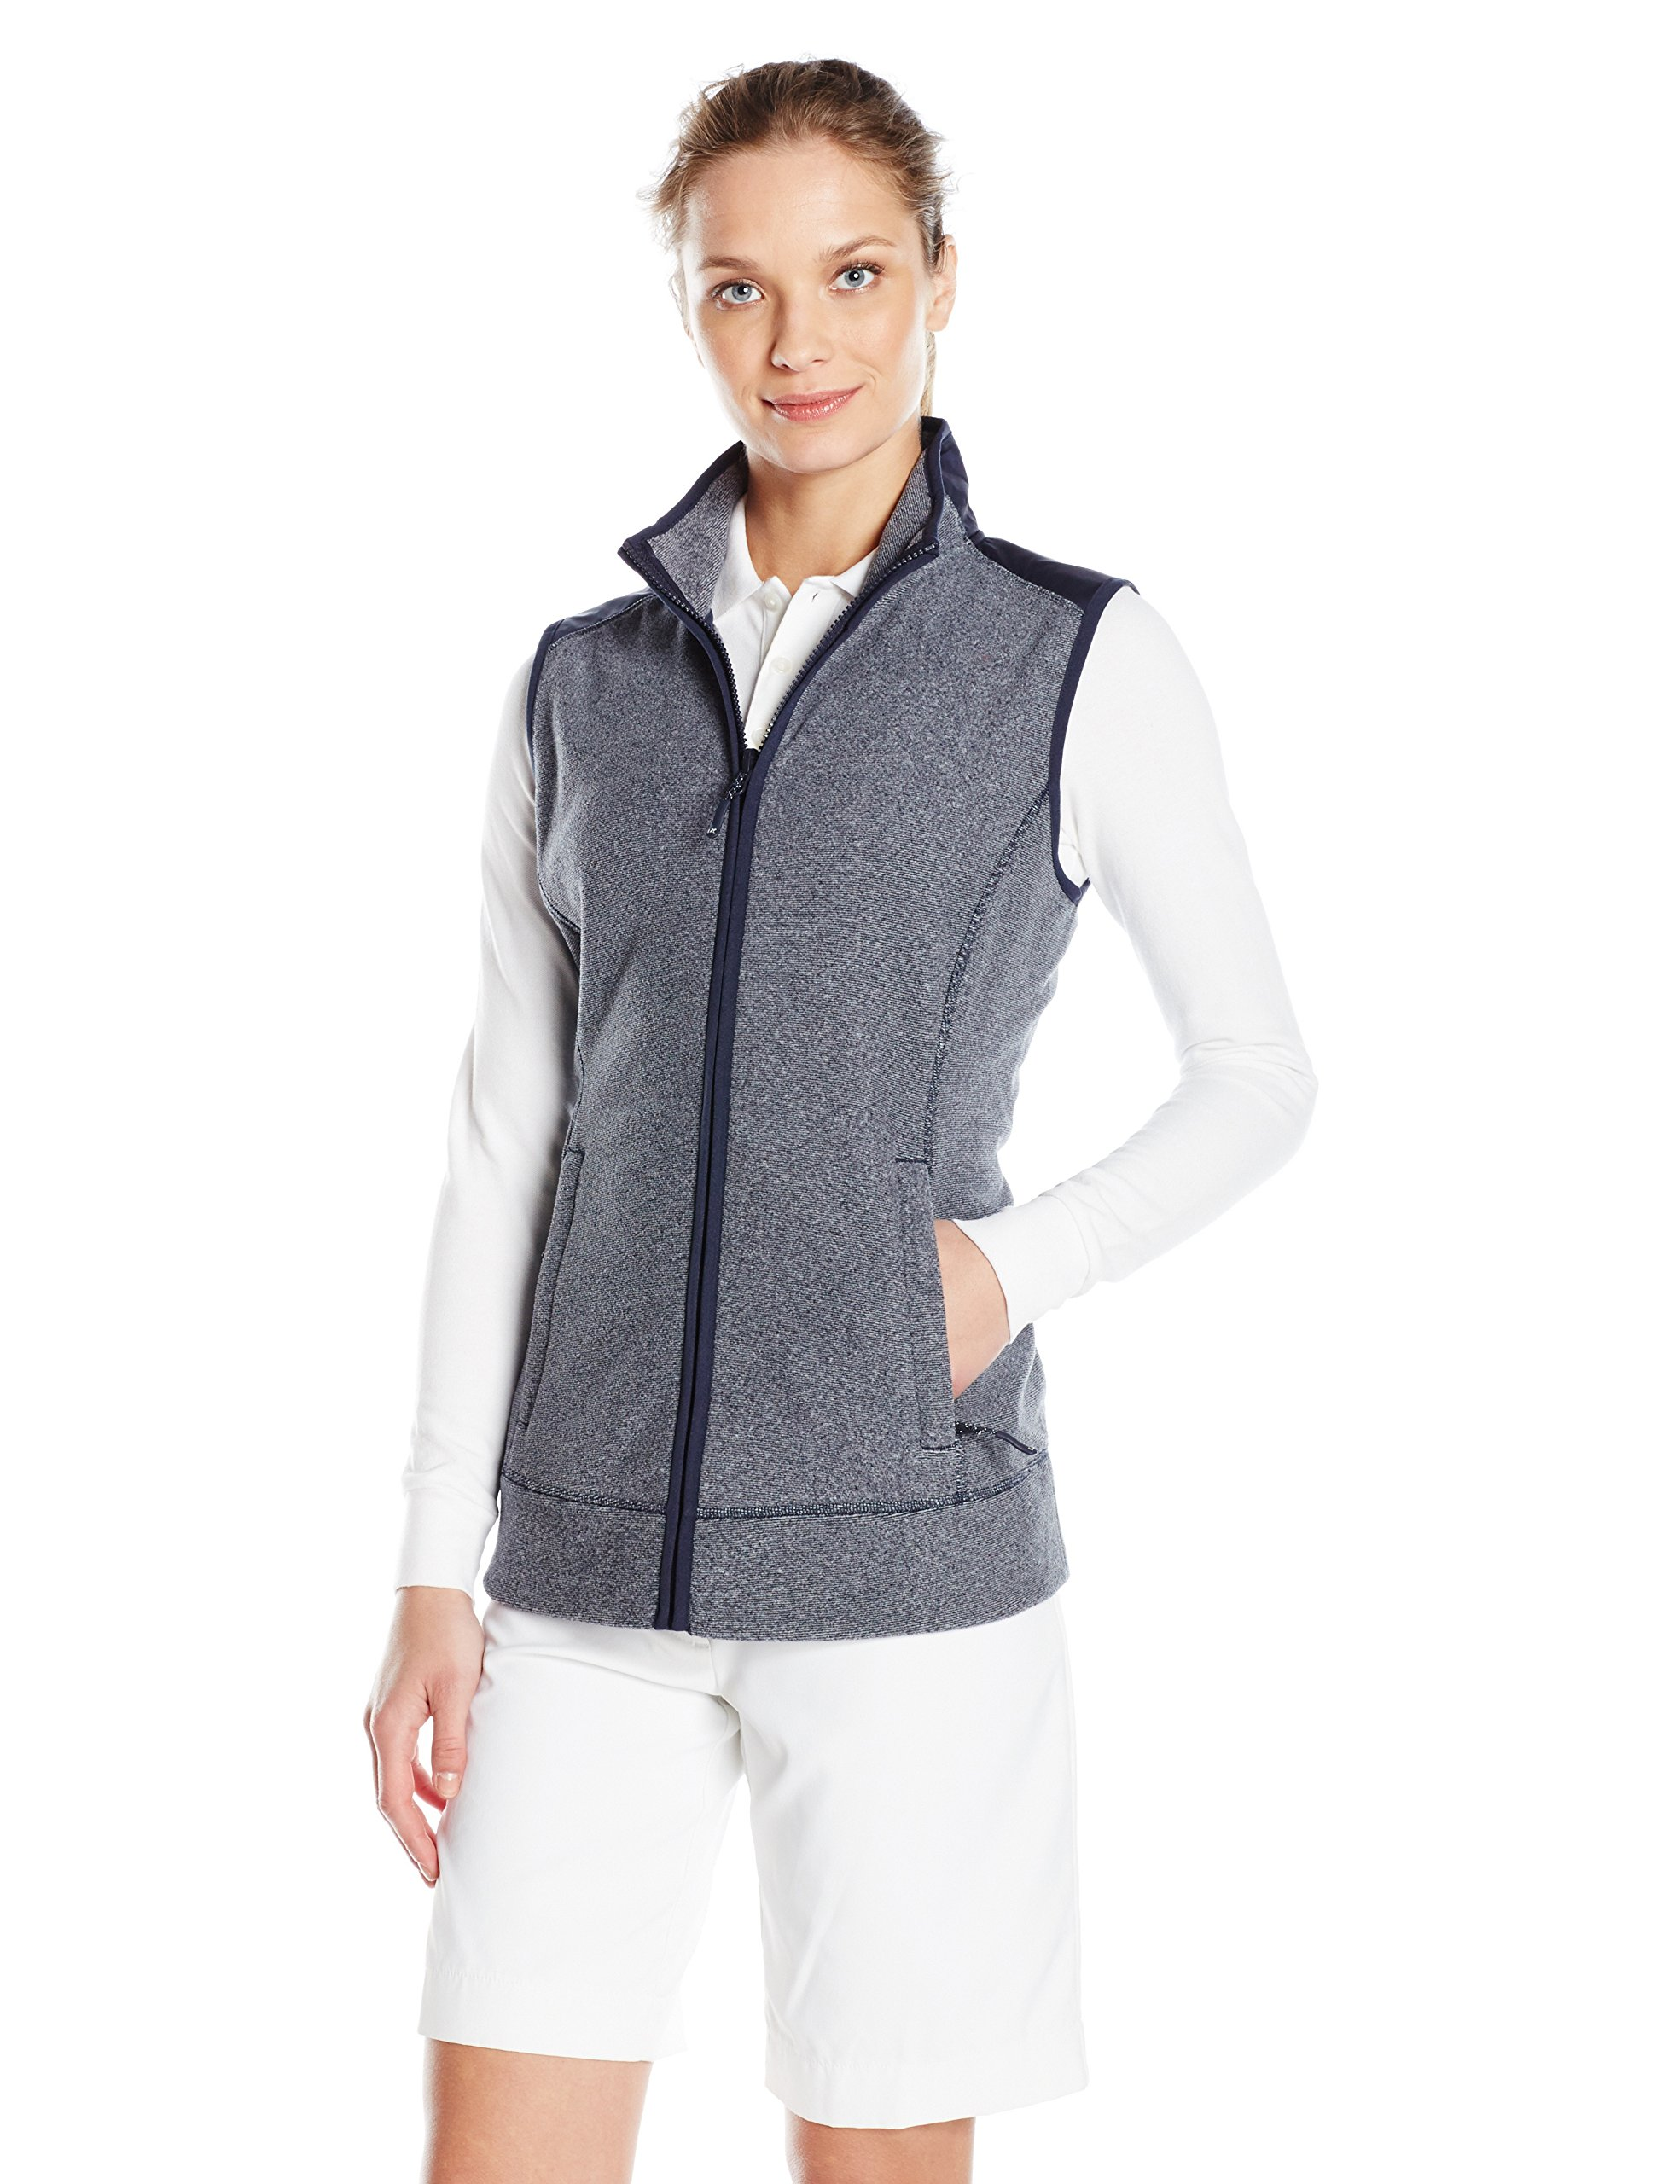 Cutter & Buck Women's Cb Weathertec Cedar Park Vest, Liberty Navy Heather, XXXL by Cutter